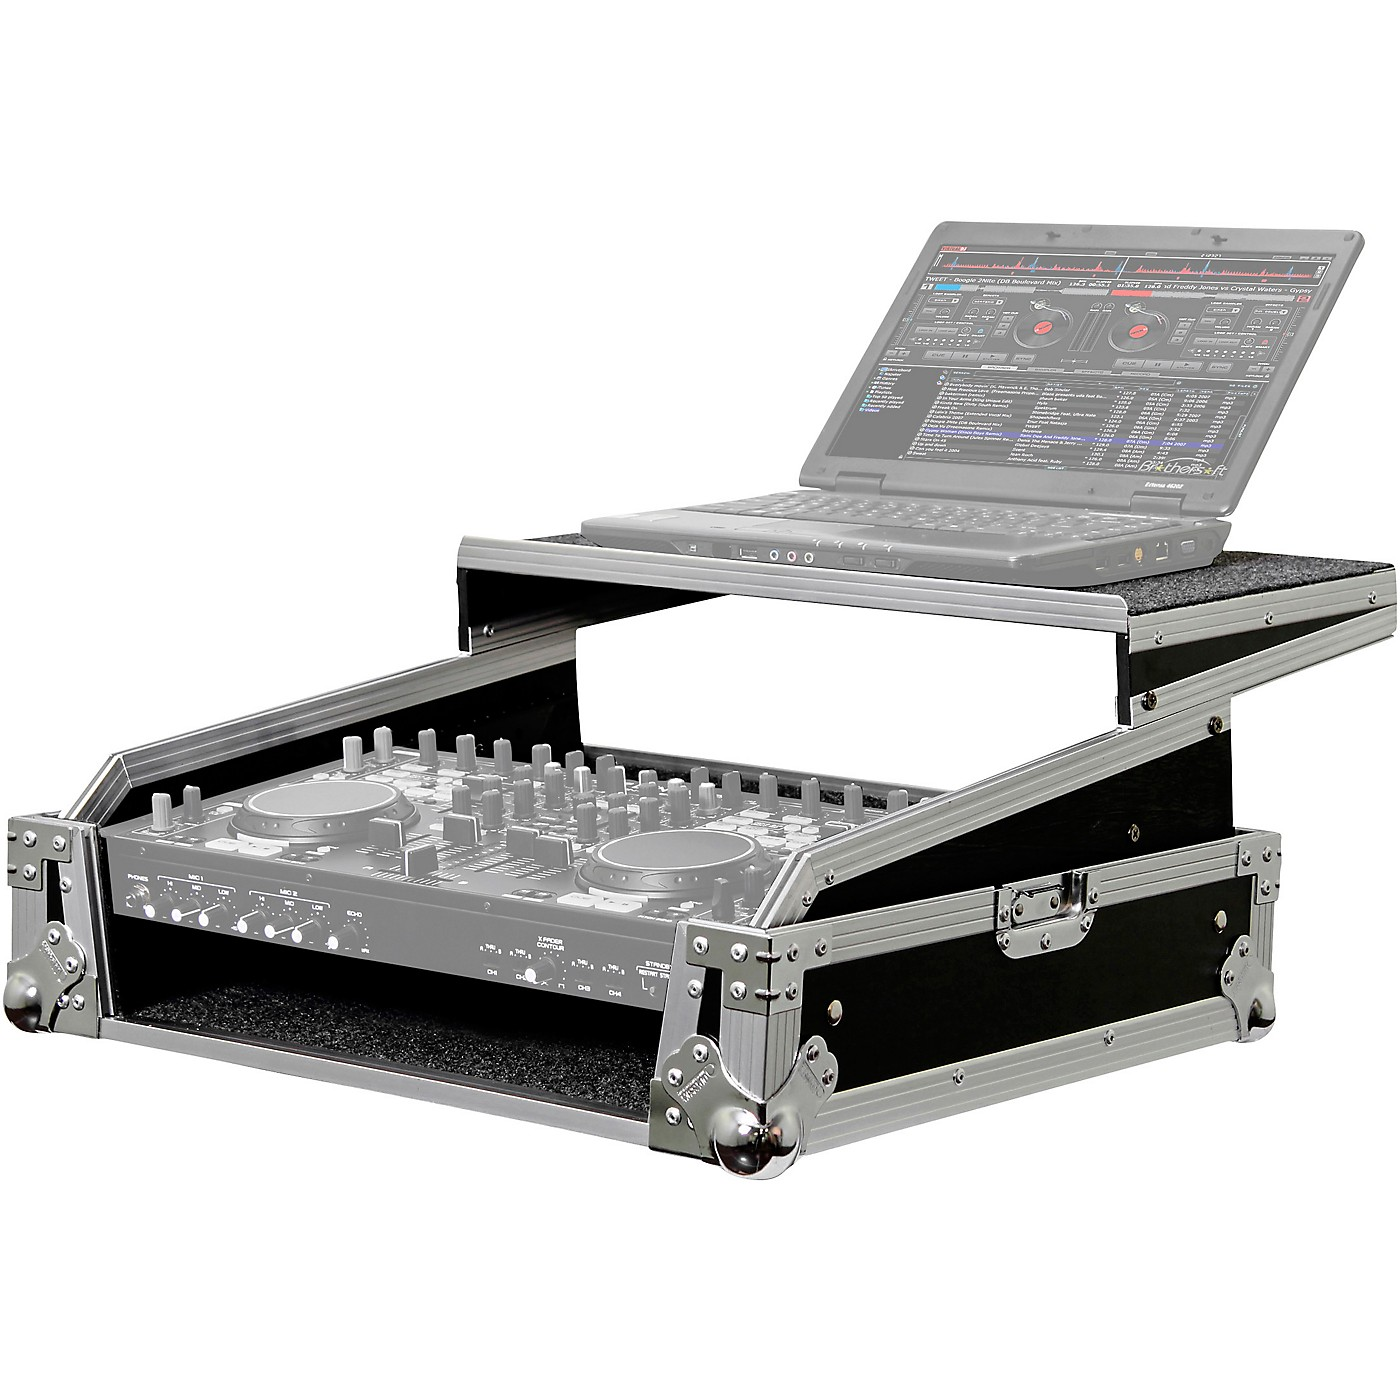 Odyssey FZGS8CDMIX Flight Zone Glide Style Rackmount Case for DJ Controllers & Front Load CD/Digital Media Mixers thumbnail